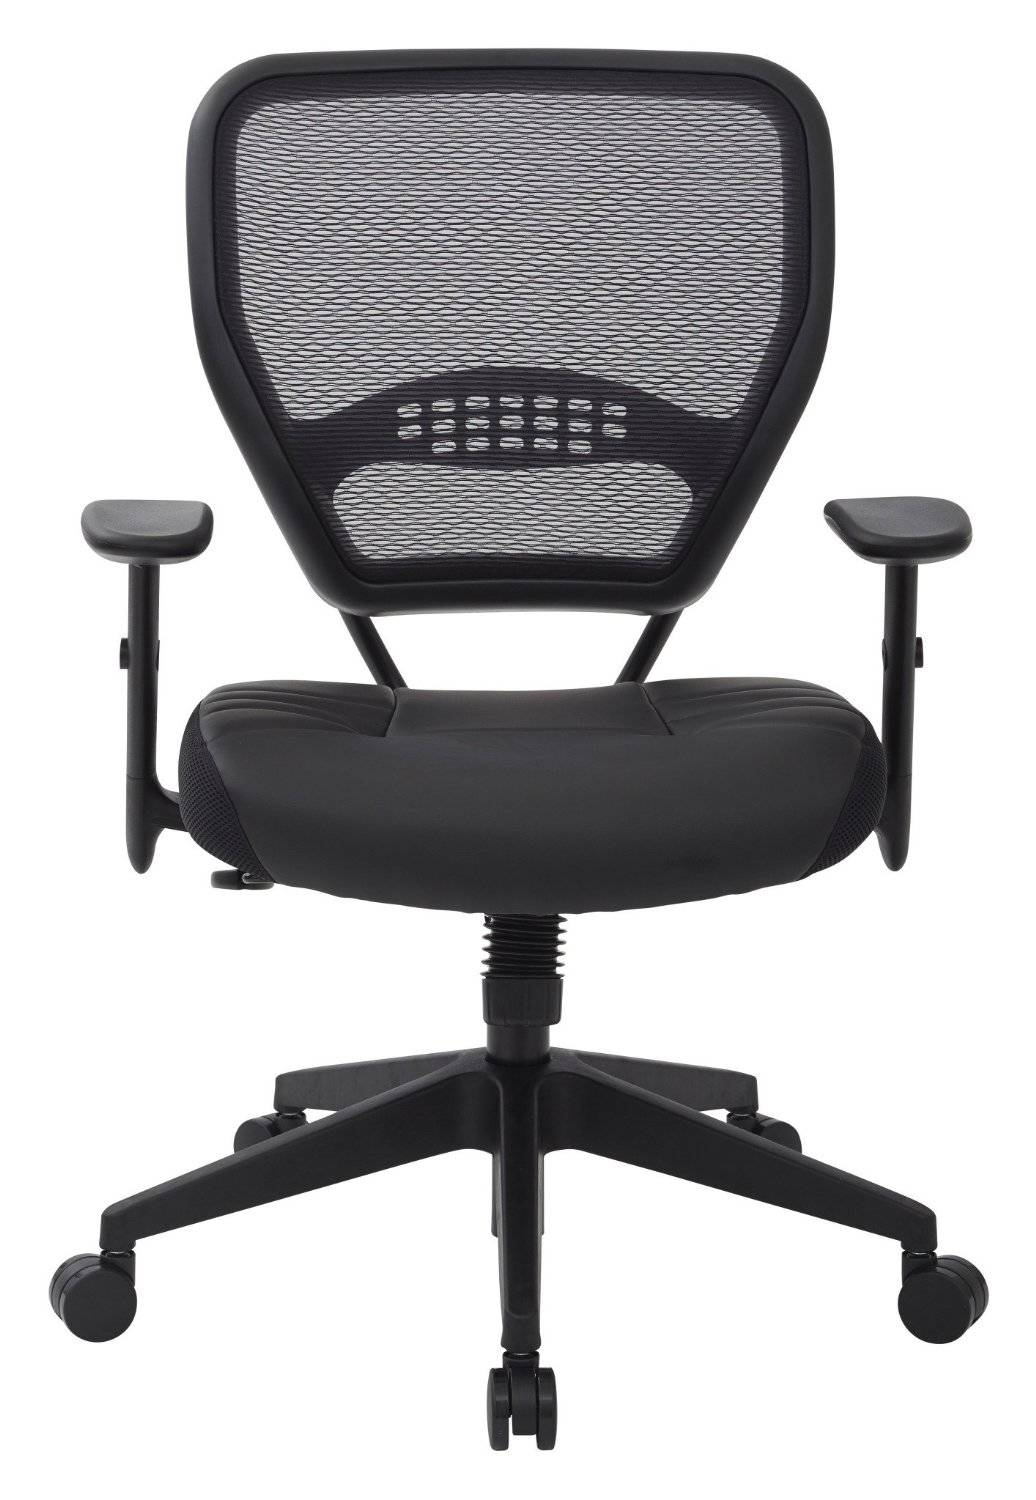 Fabulous Best Office Chair Under 200 Usd November 2019 Buyers Short Links Chair Design For Home Short Linksinfo